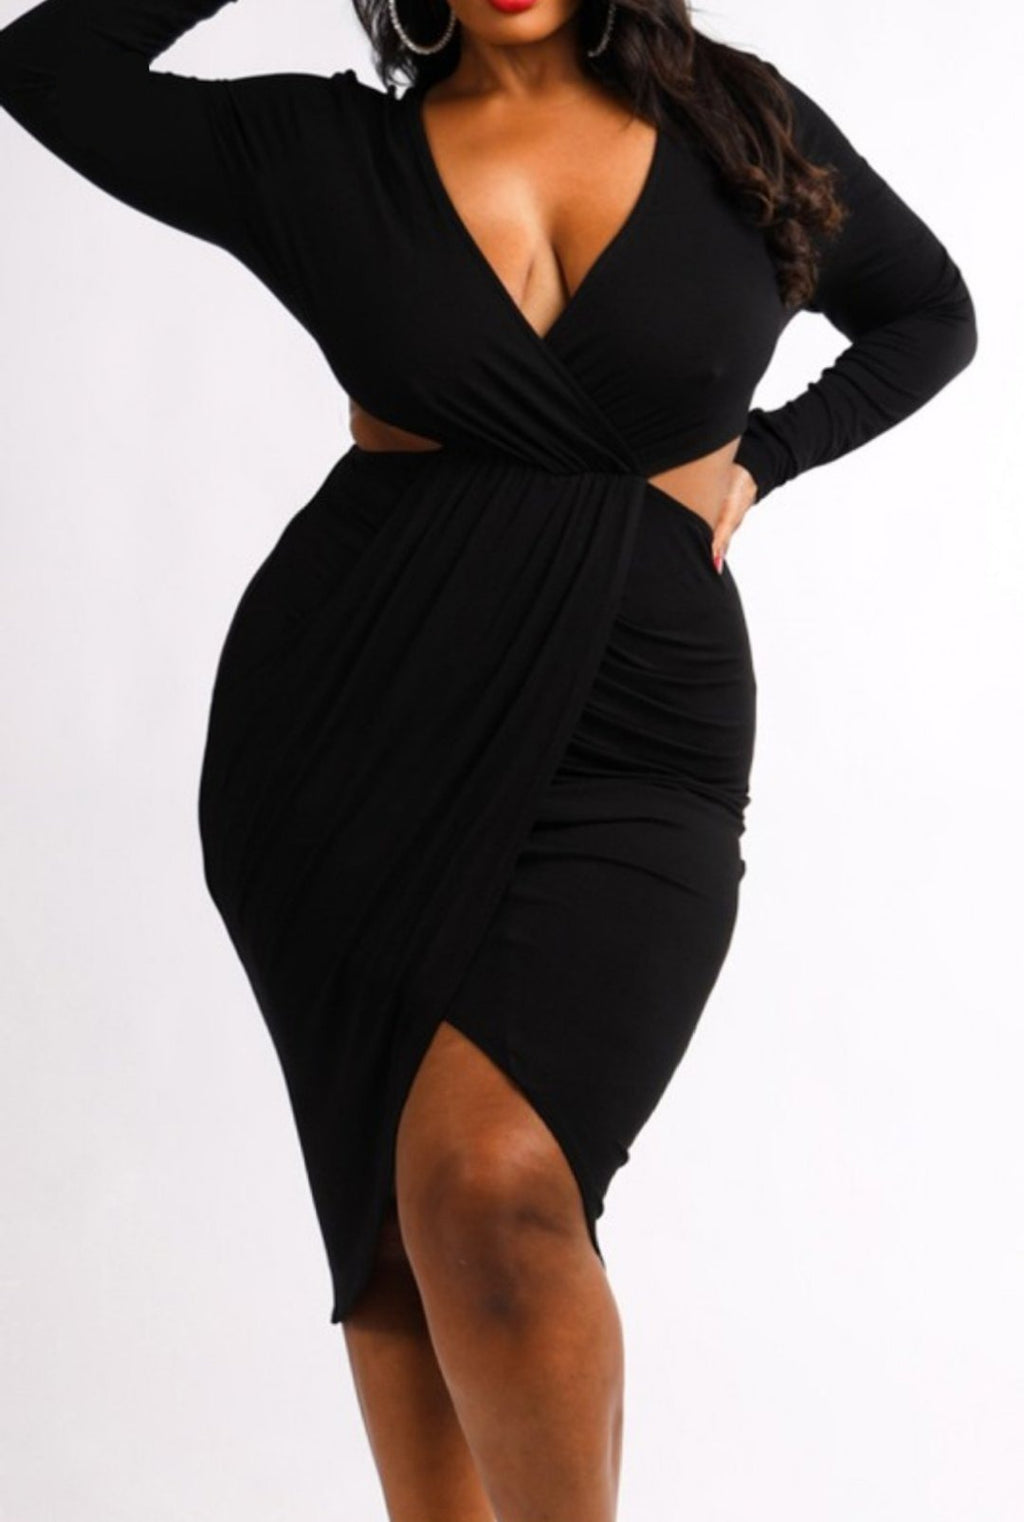 I Got Cut Out Plus Size Dress